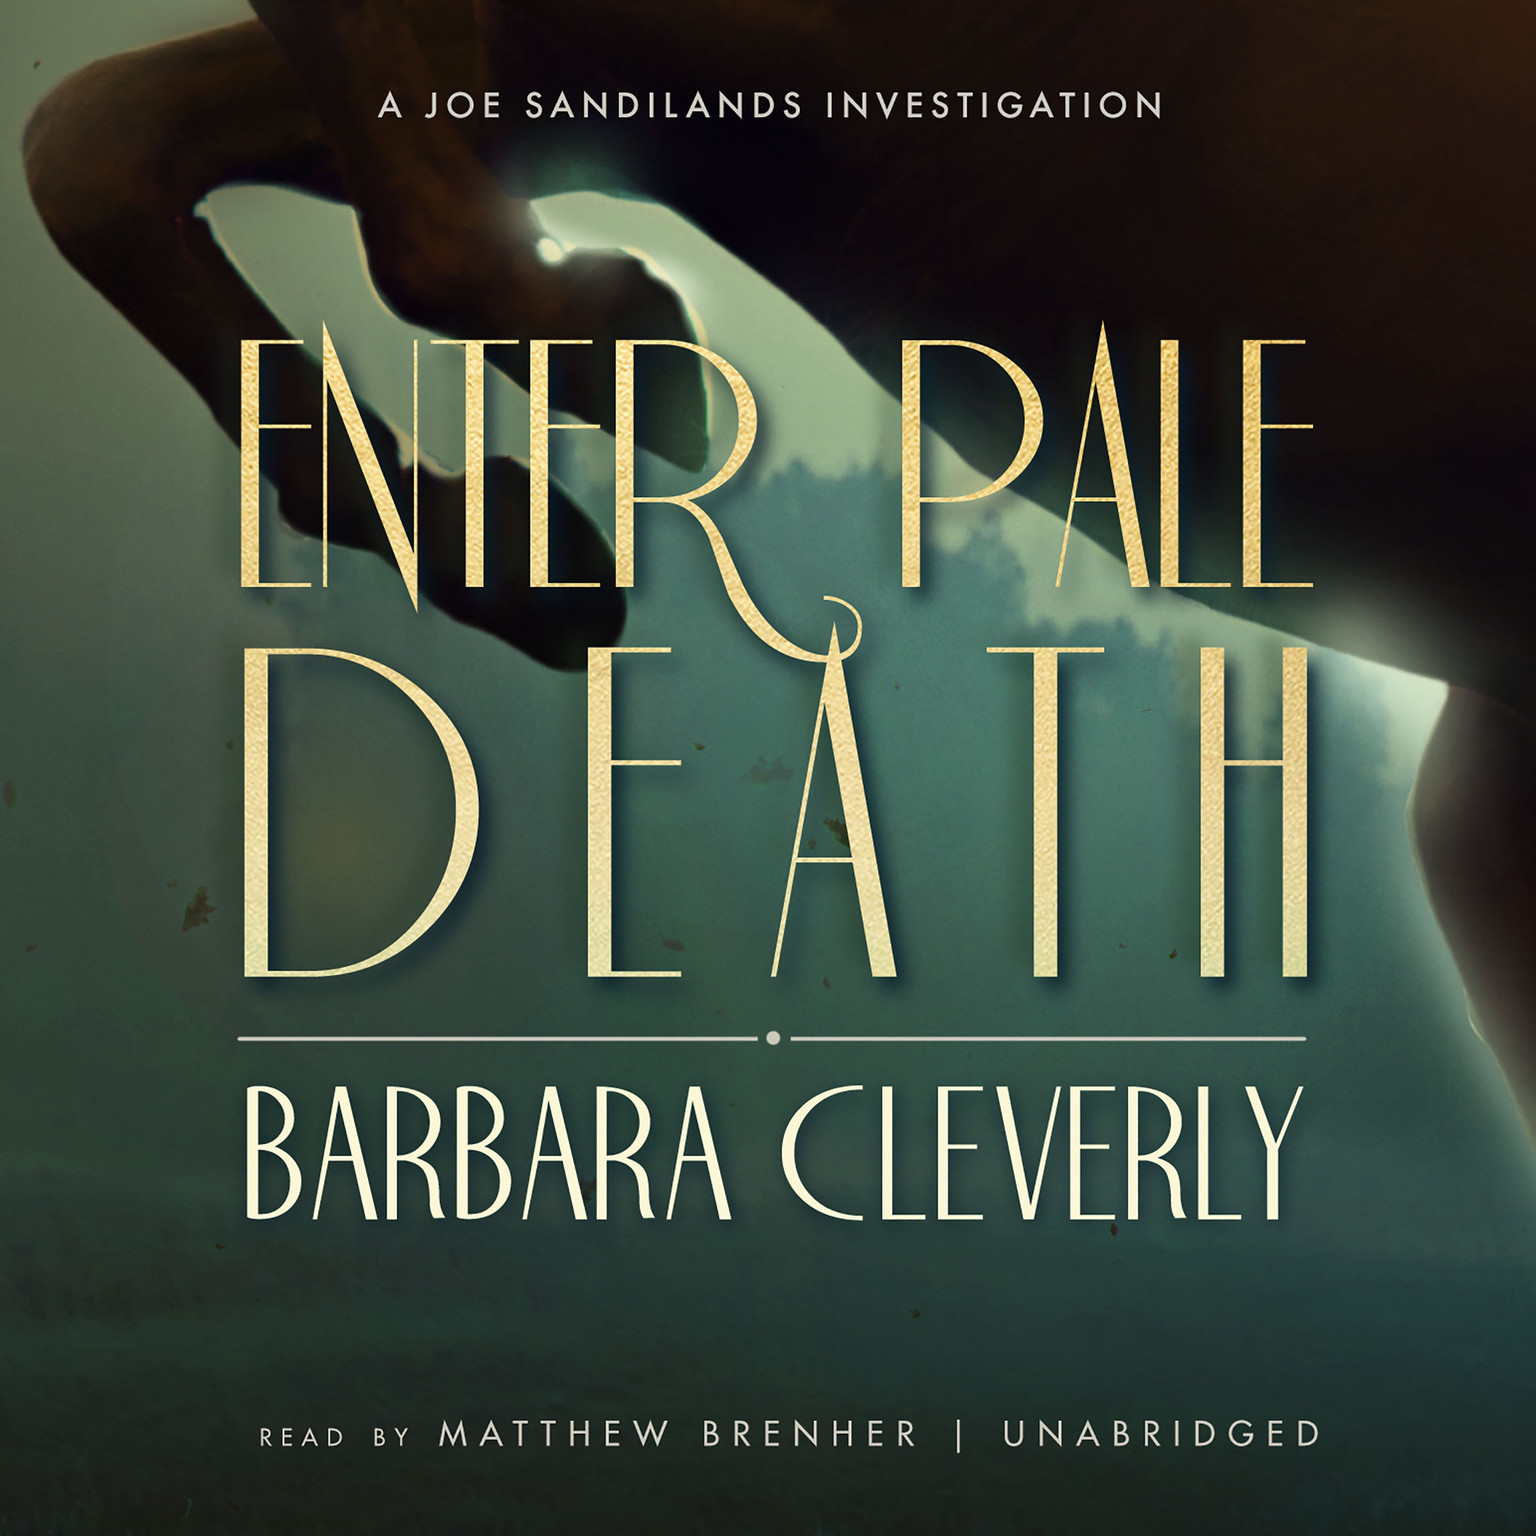 Printable Enter Pale Death Audiobook Cover Art